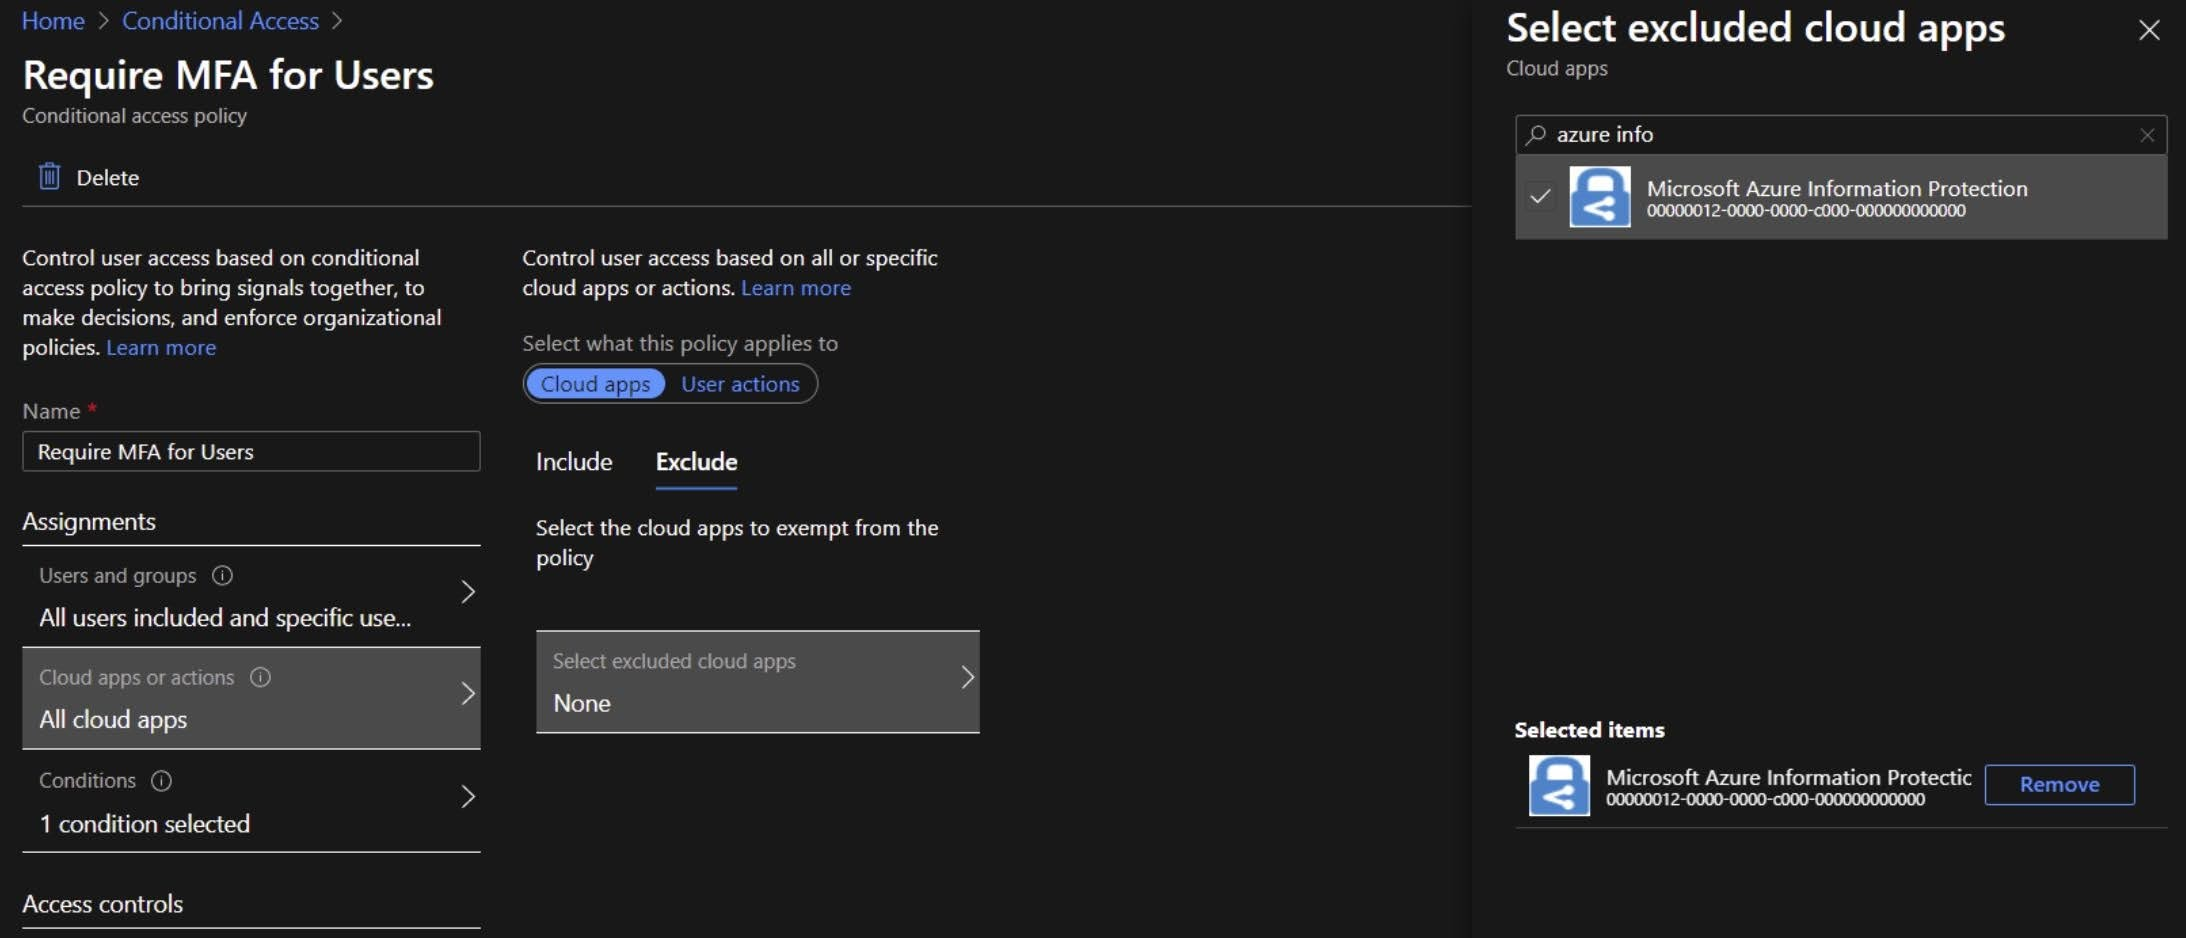 Exclude Microsoft Azure Information Protection